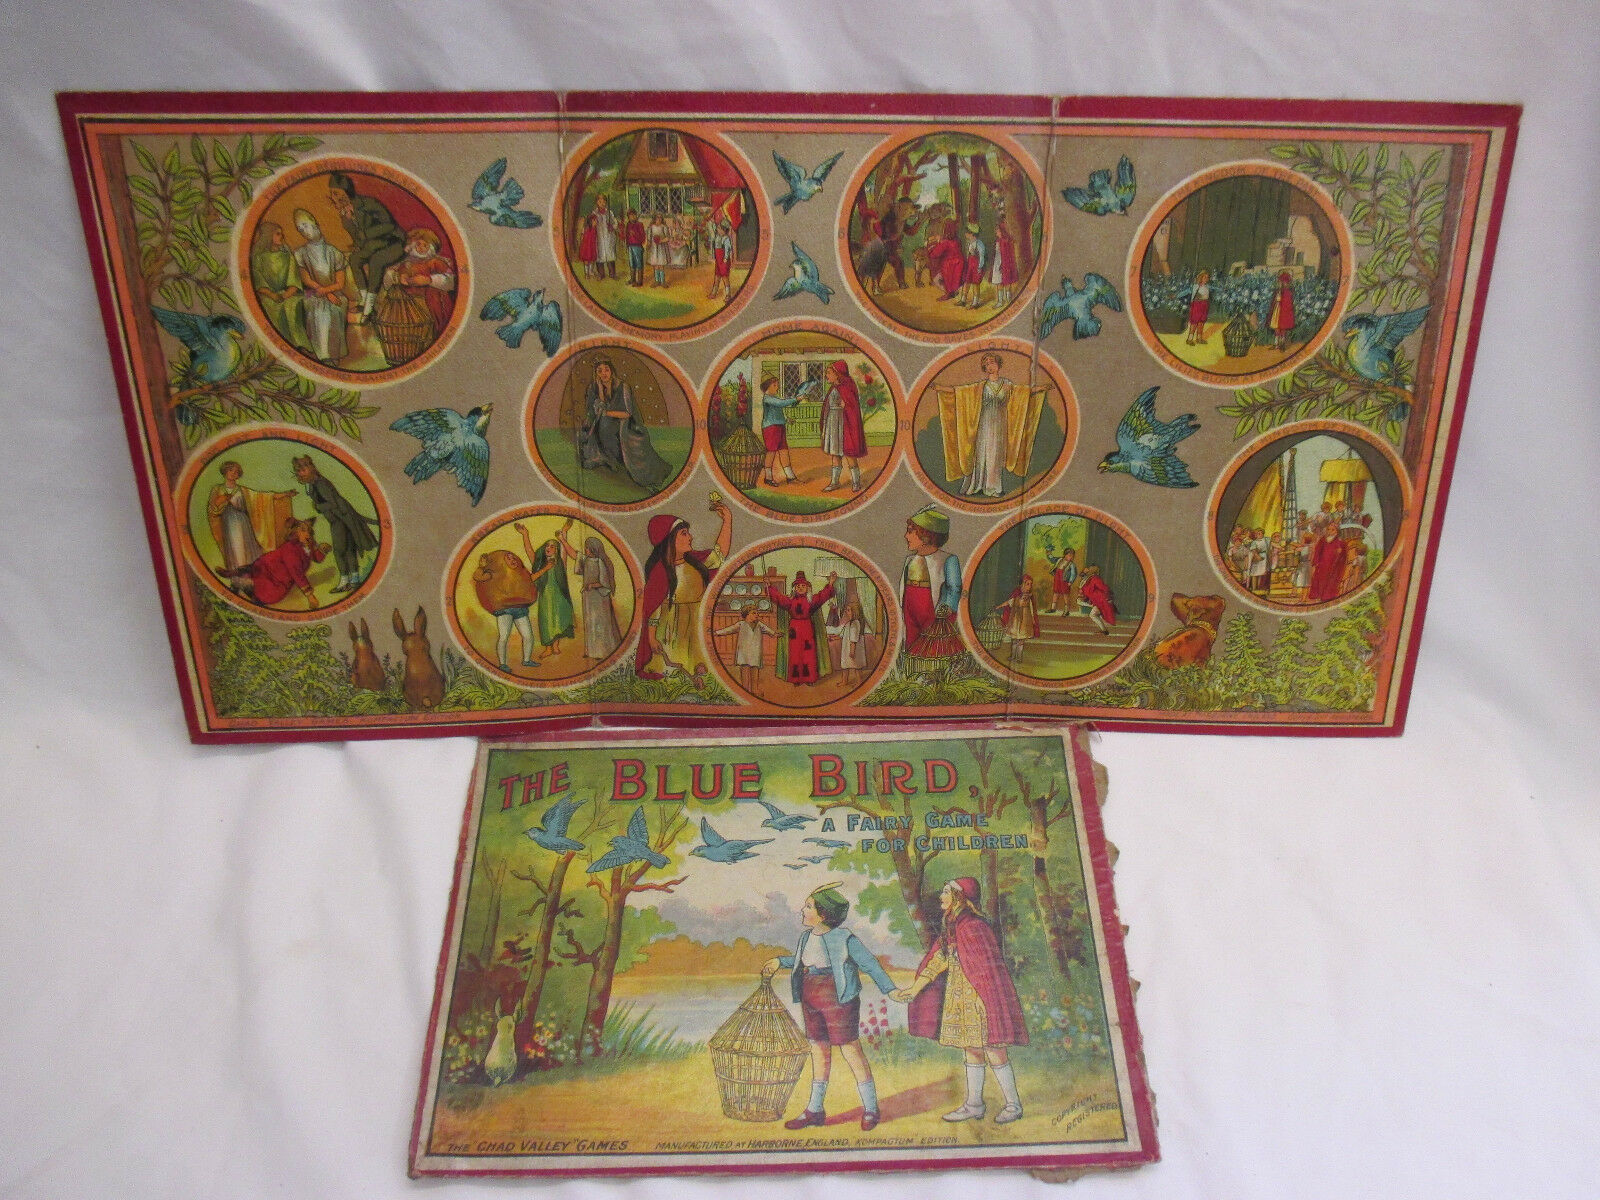 Rare Early Vintage Chad Valley Board Game - bluee Bird Tiddlywinks (B)